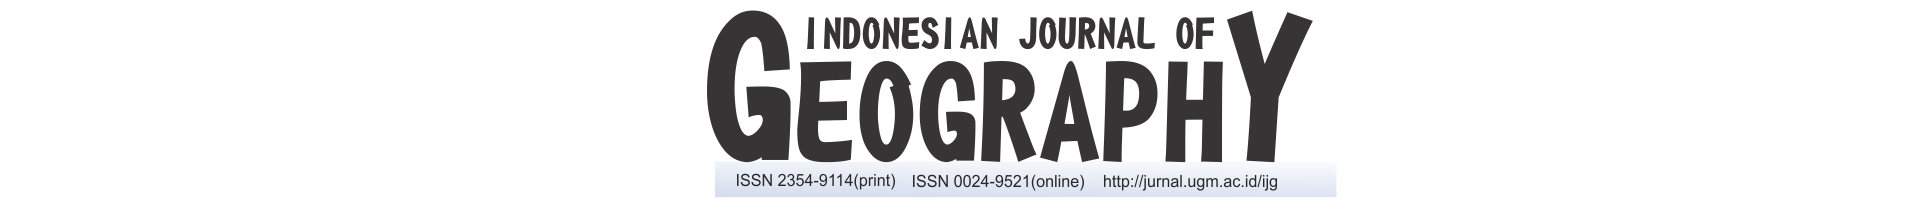 Indonesian Journal of Geography